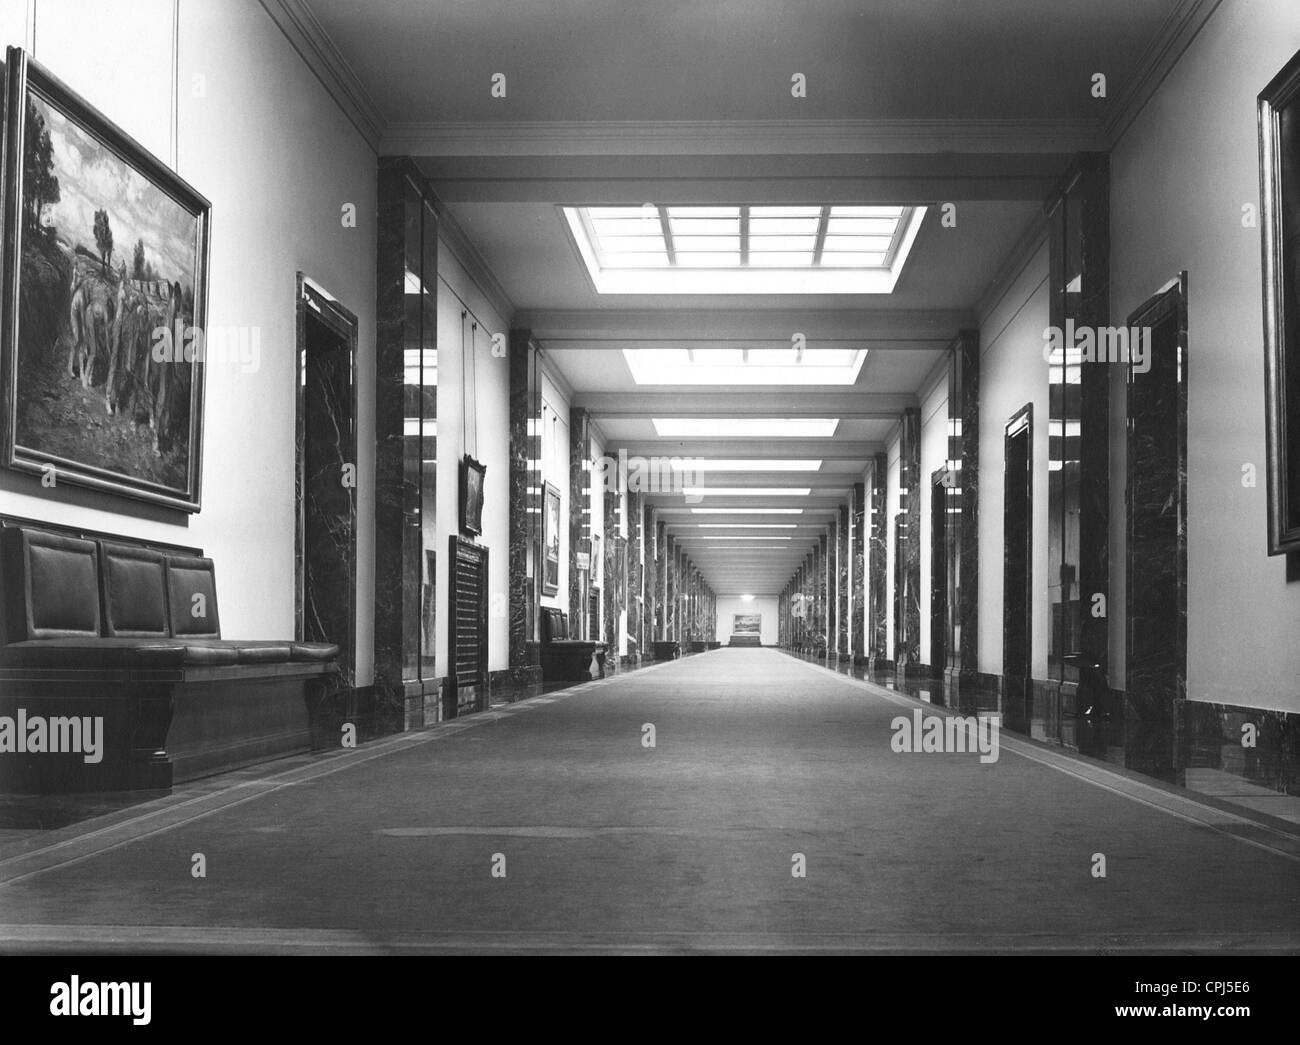 The interior view of the reich chancellery stock photo for Images of interior